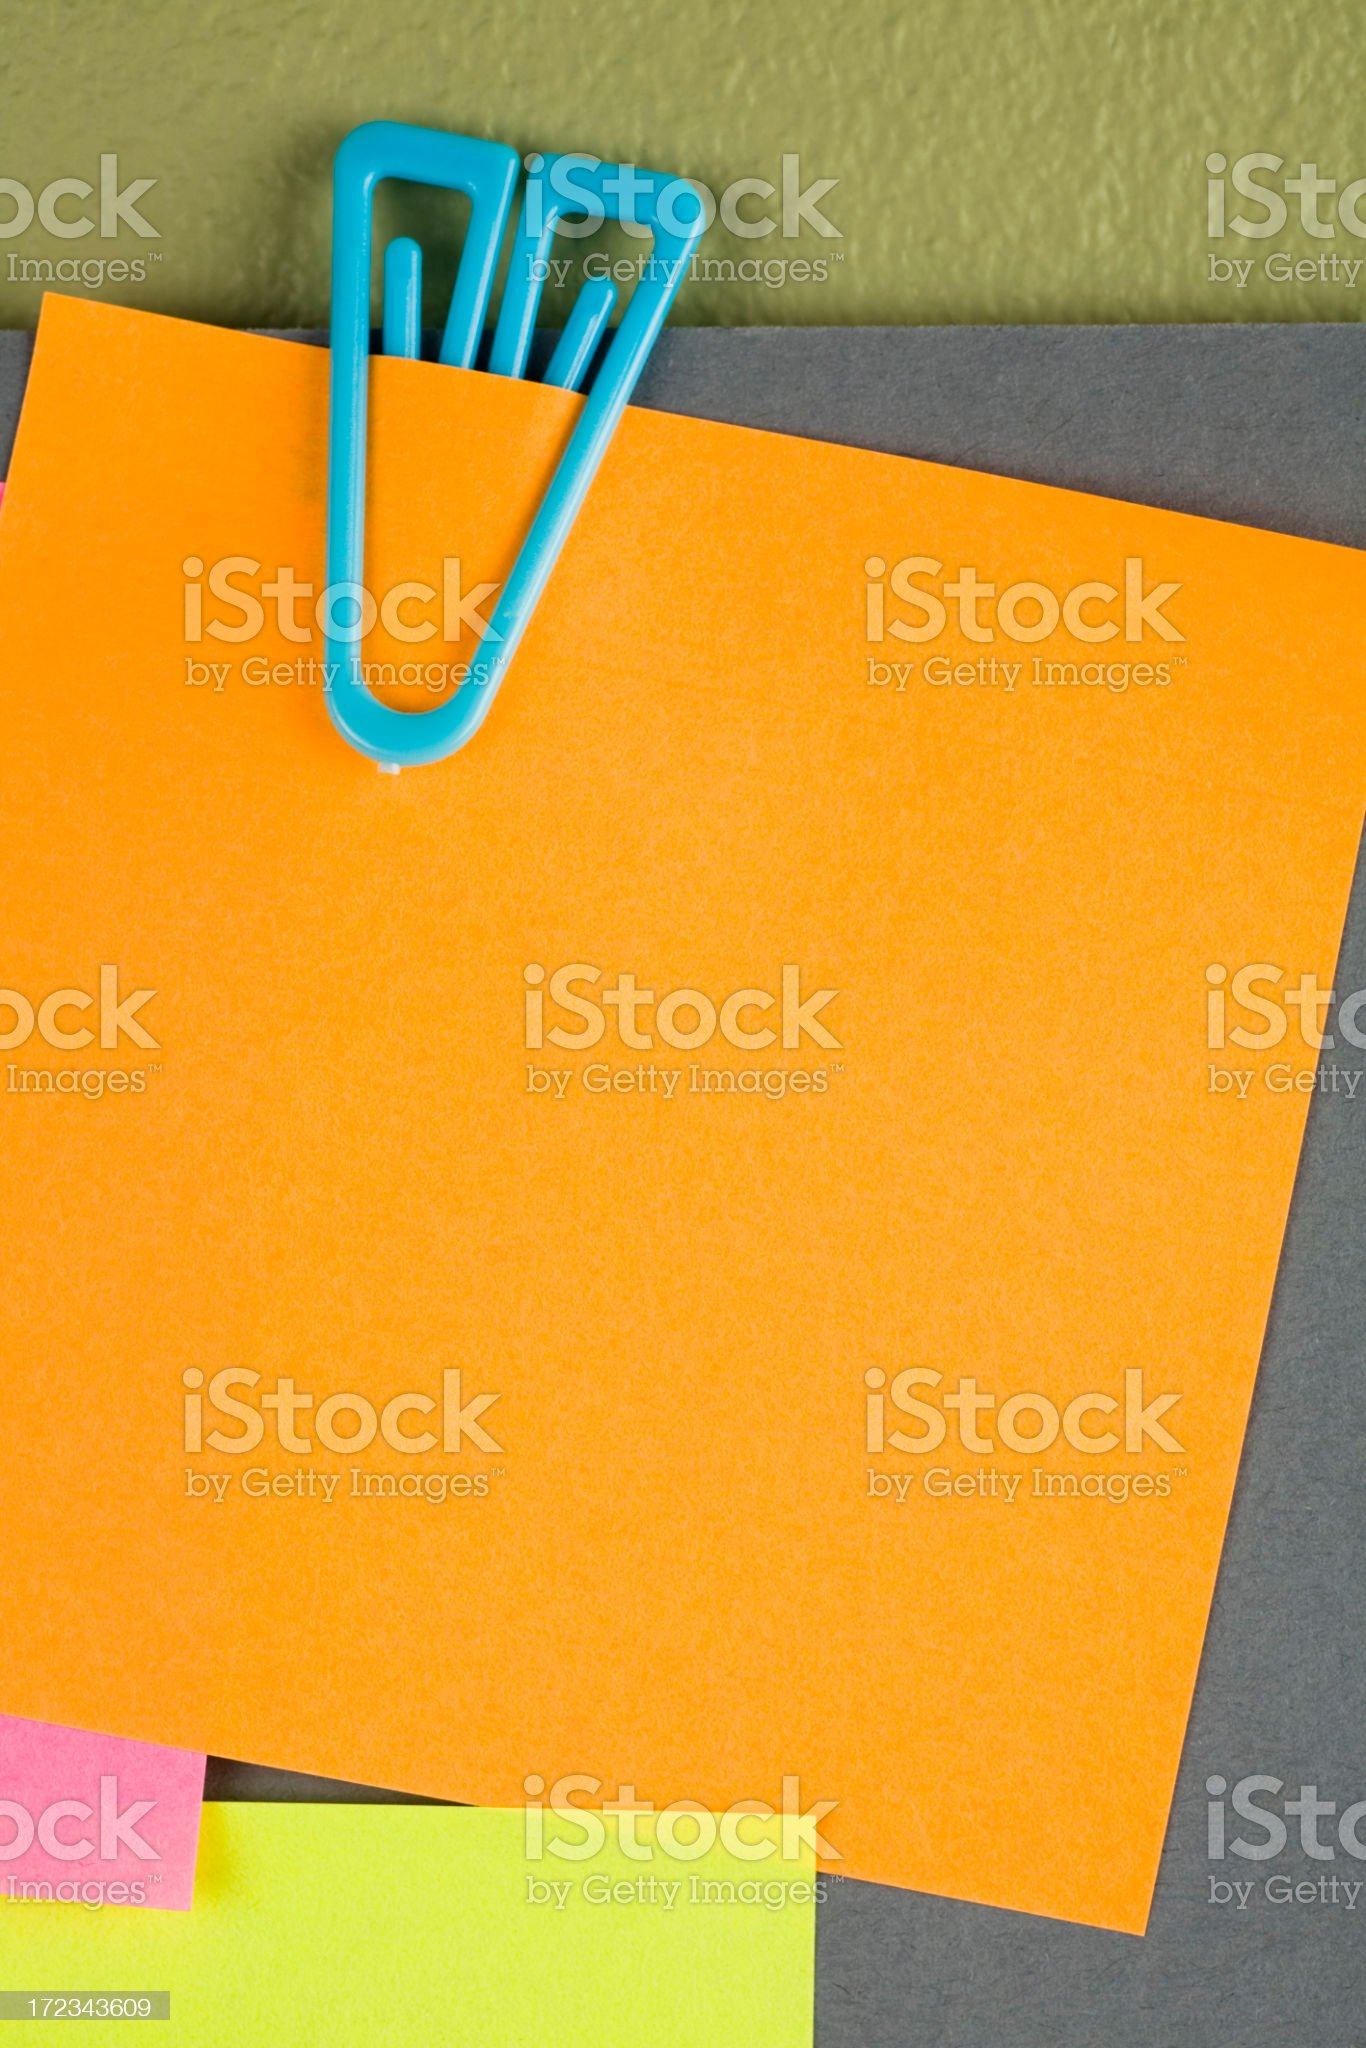 Note close up royalty-free stock photo